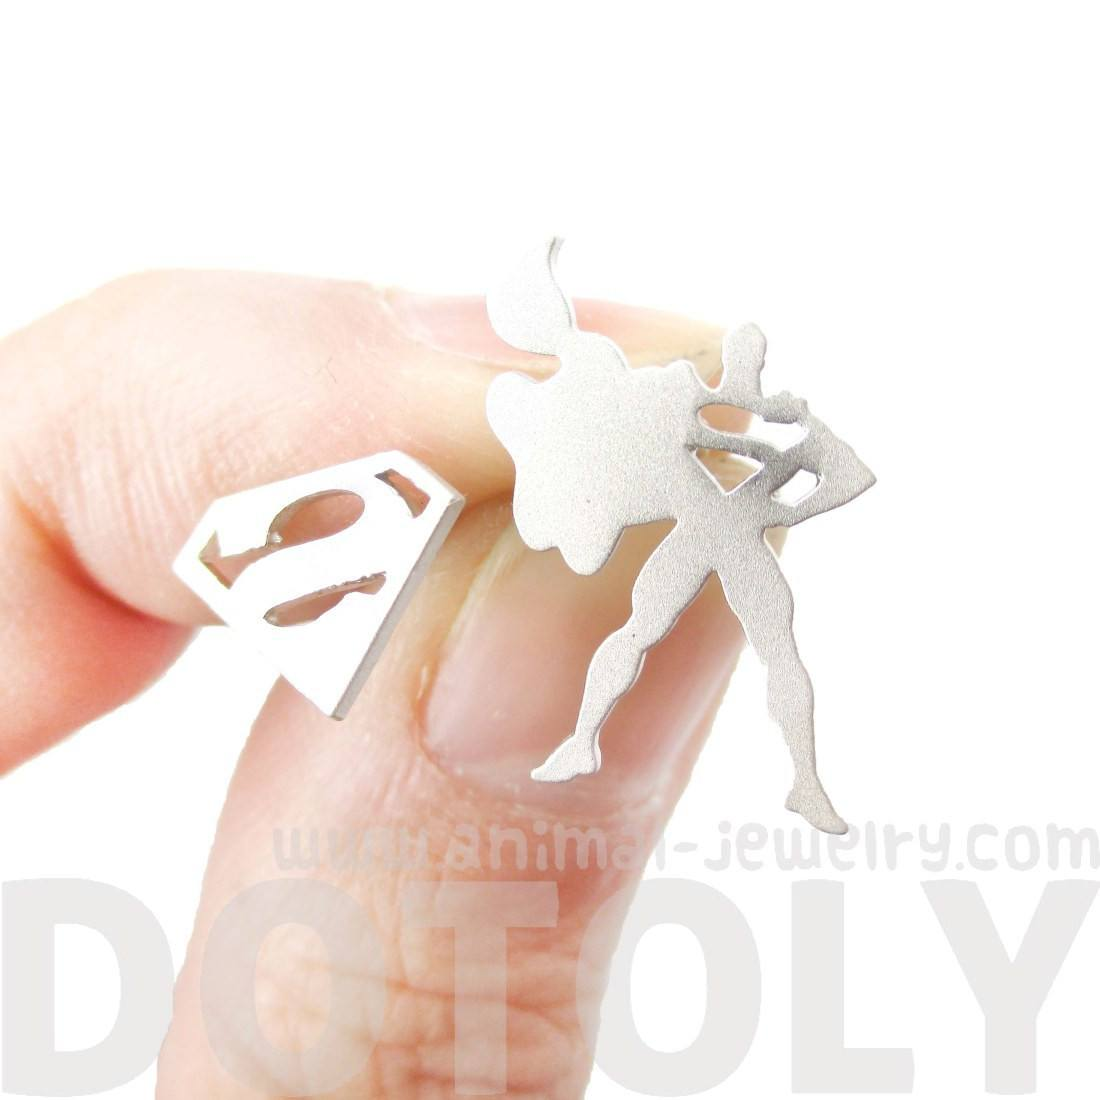 Superman Silhouette and Logo Symbol Shaped Stud Earrings in Silver